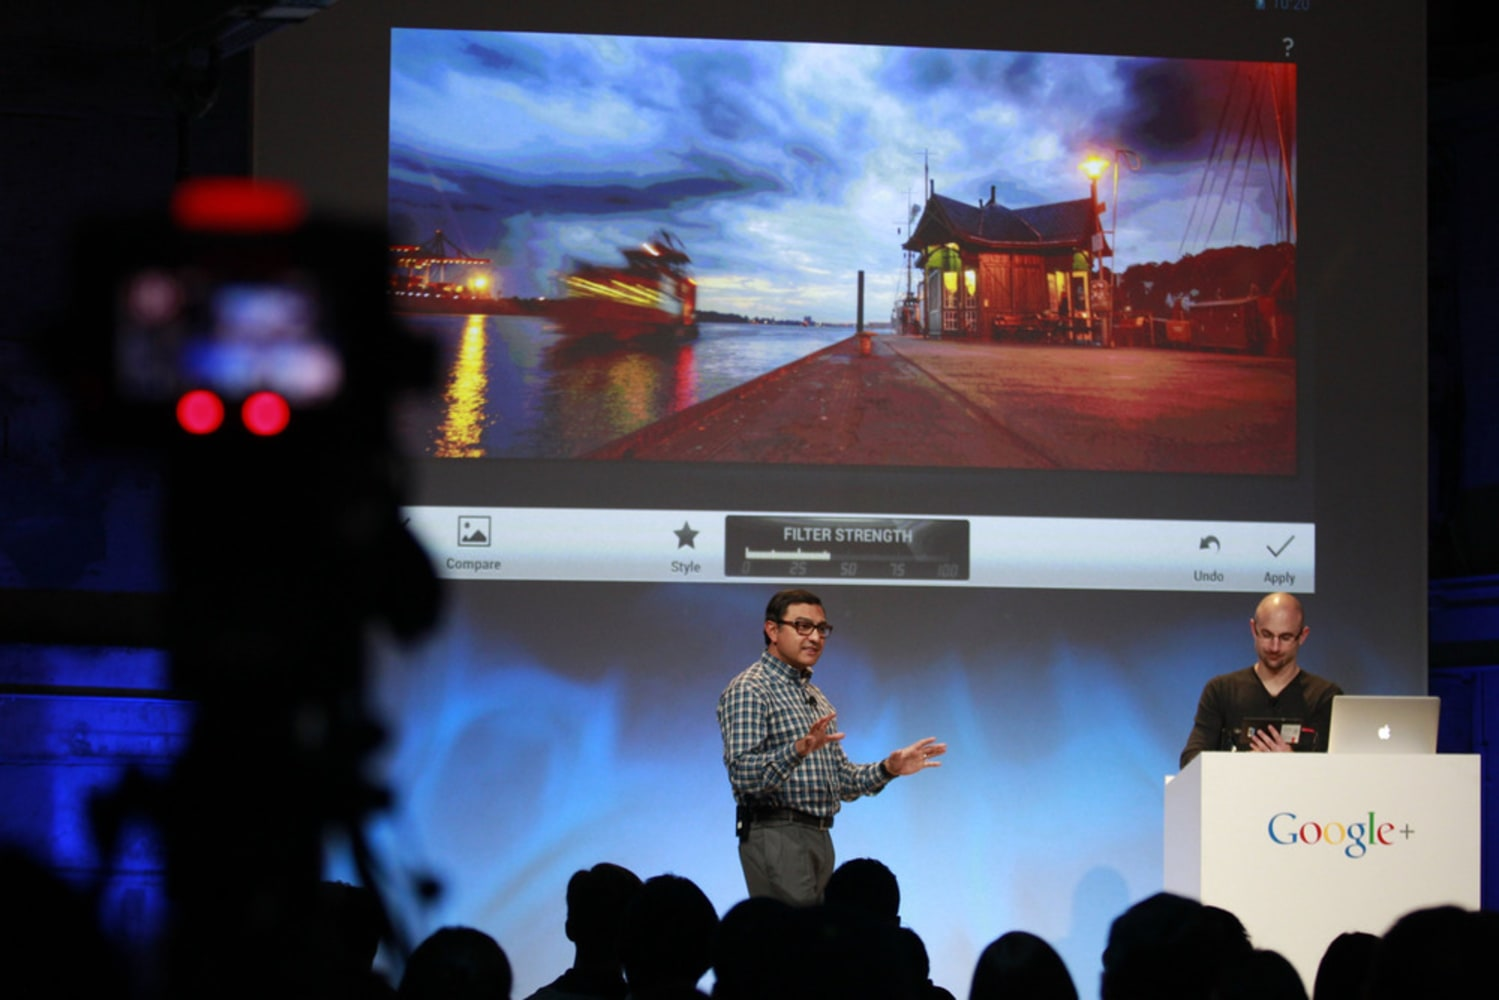 Google+ rolls out movie-making features, claims 300 million users